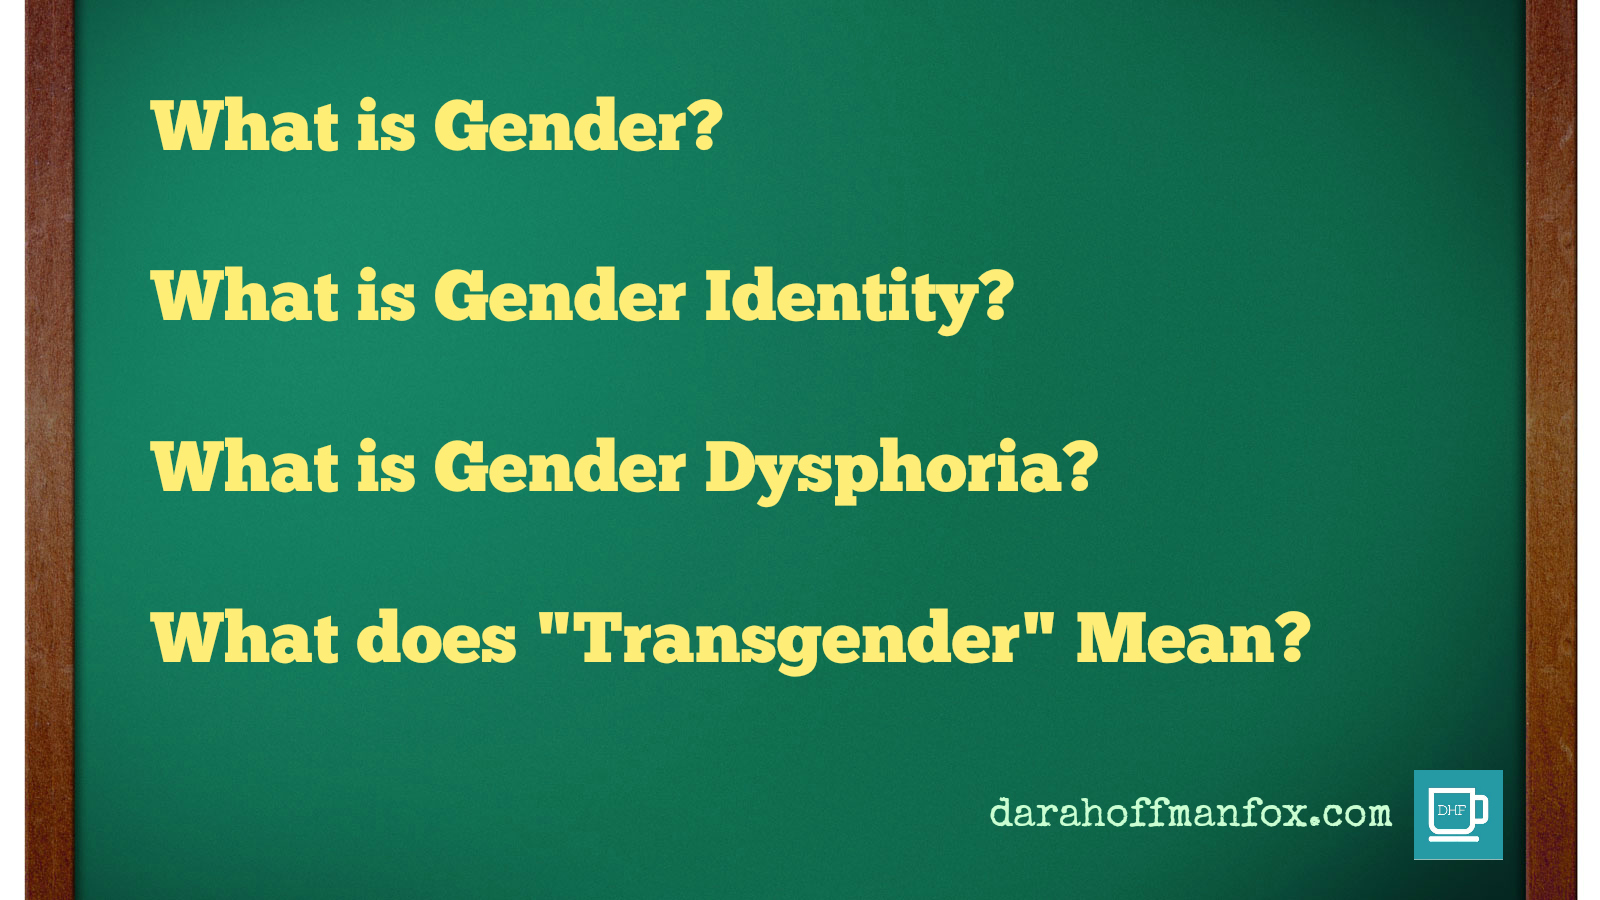 transgender is what